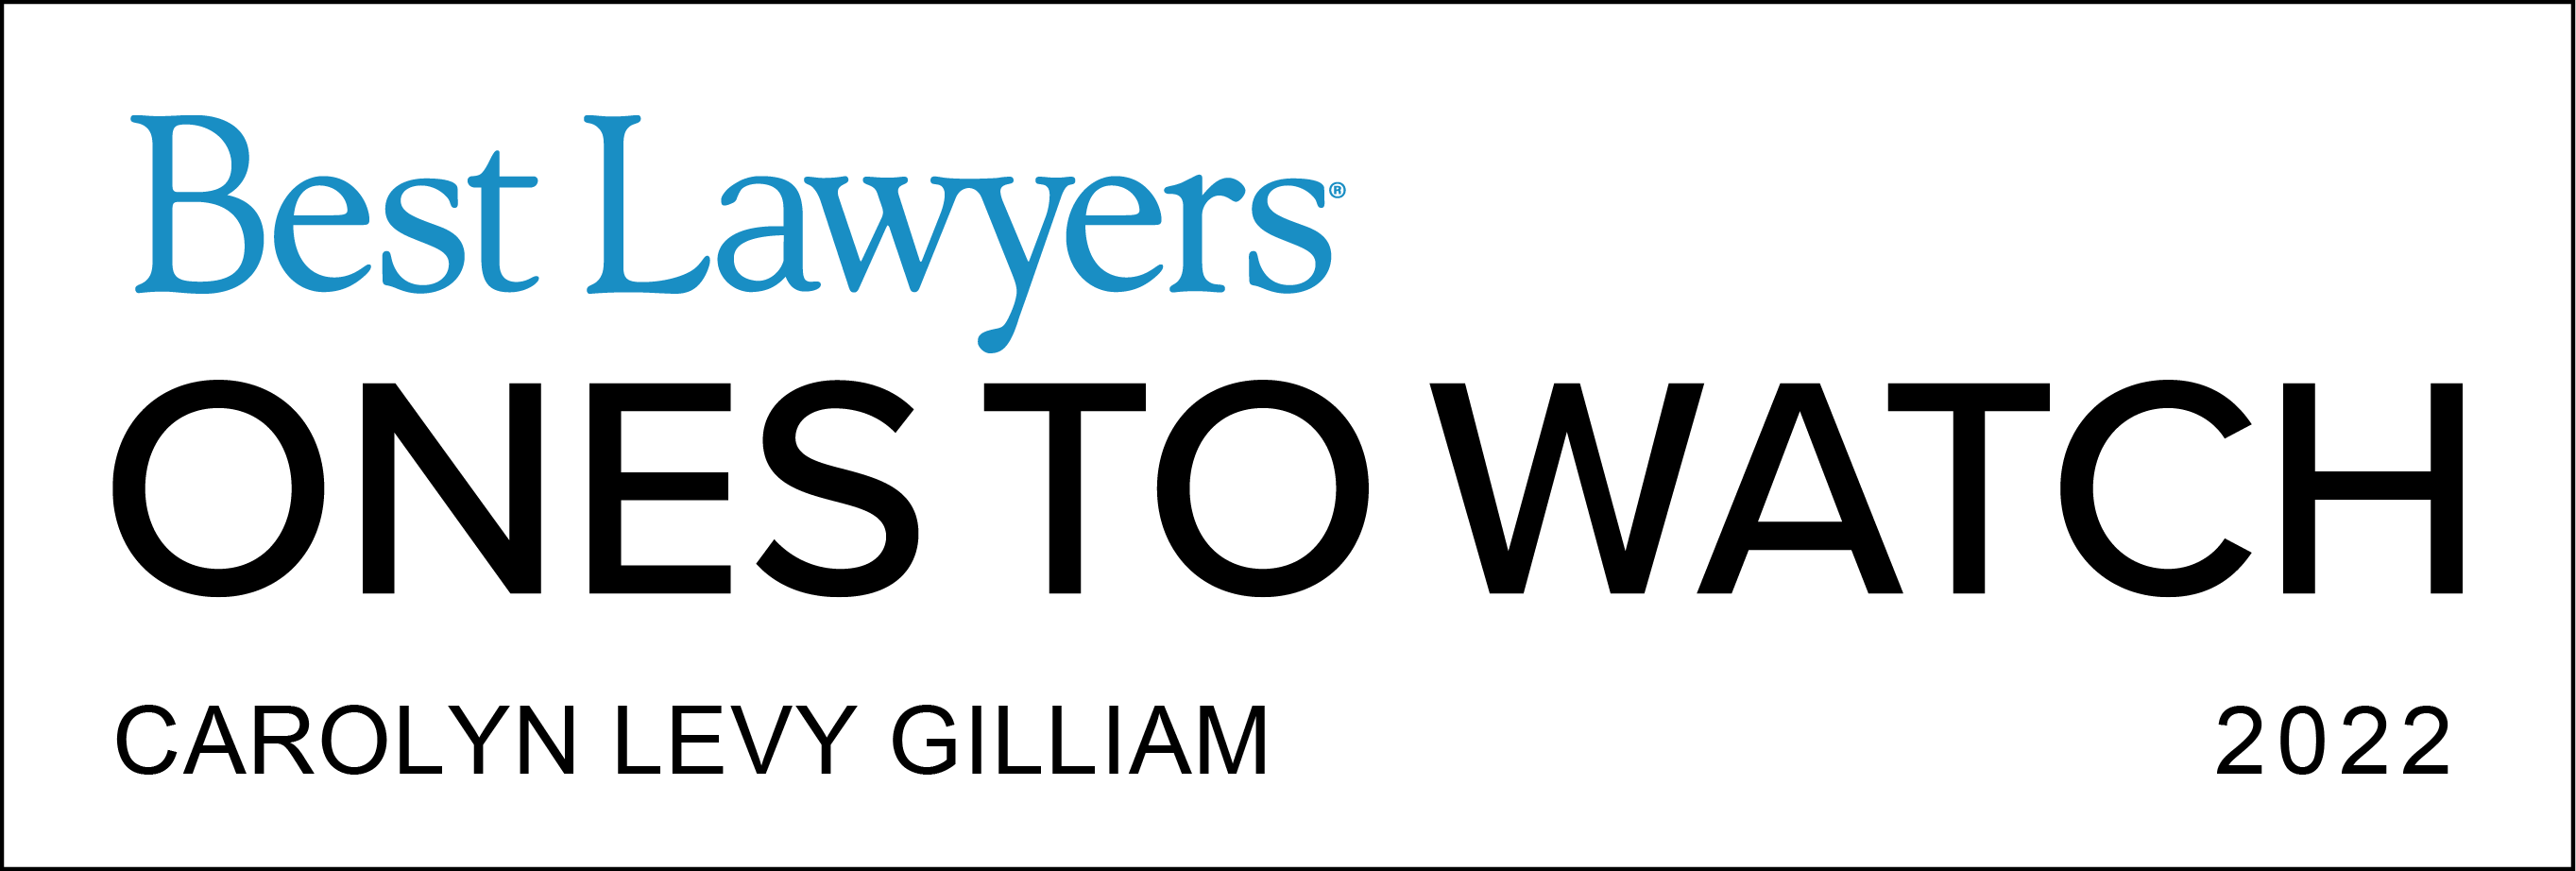 Carolyn Levy Gilliam - 2022 Best Lawyers One to Watch in Elder Law, Litigation - Trusts and Estates and Trusts and Estates